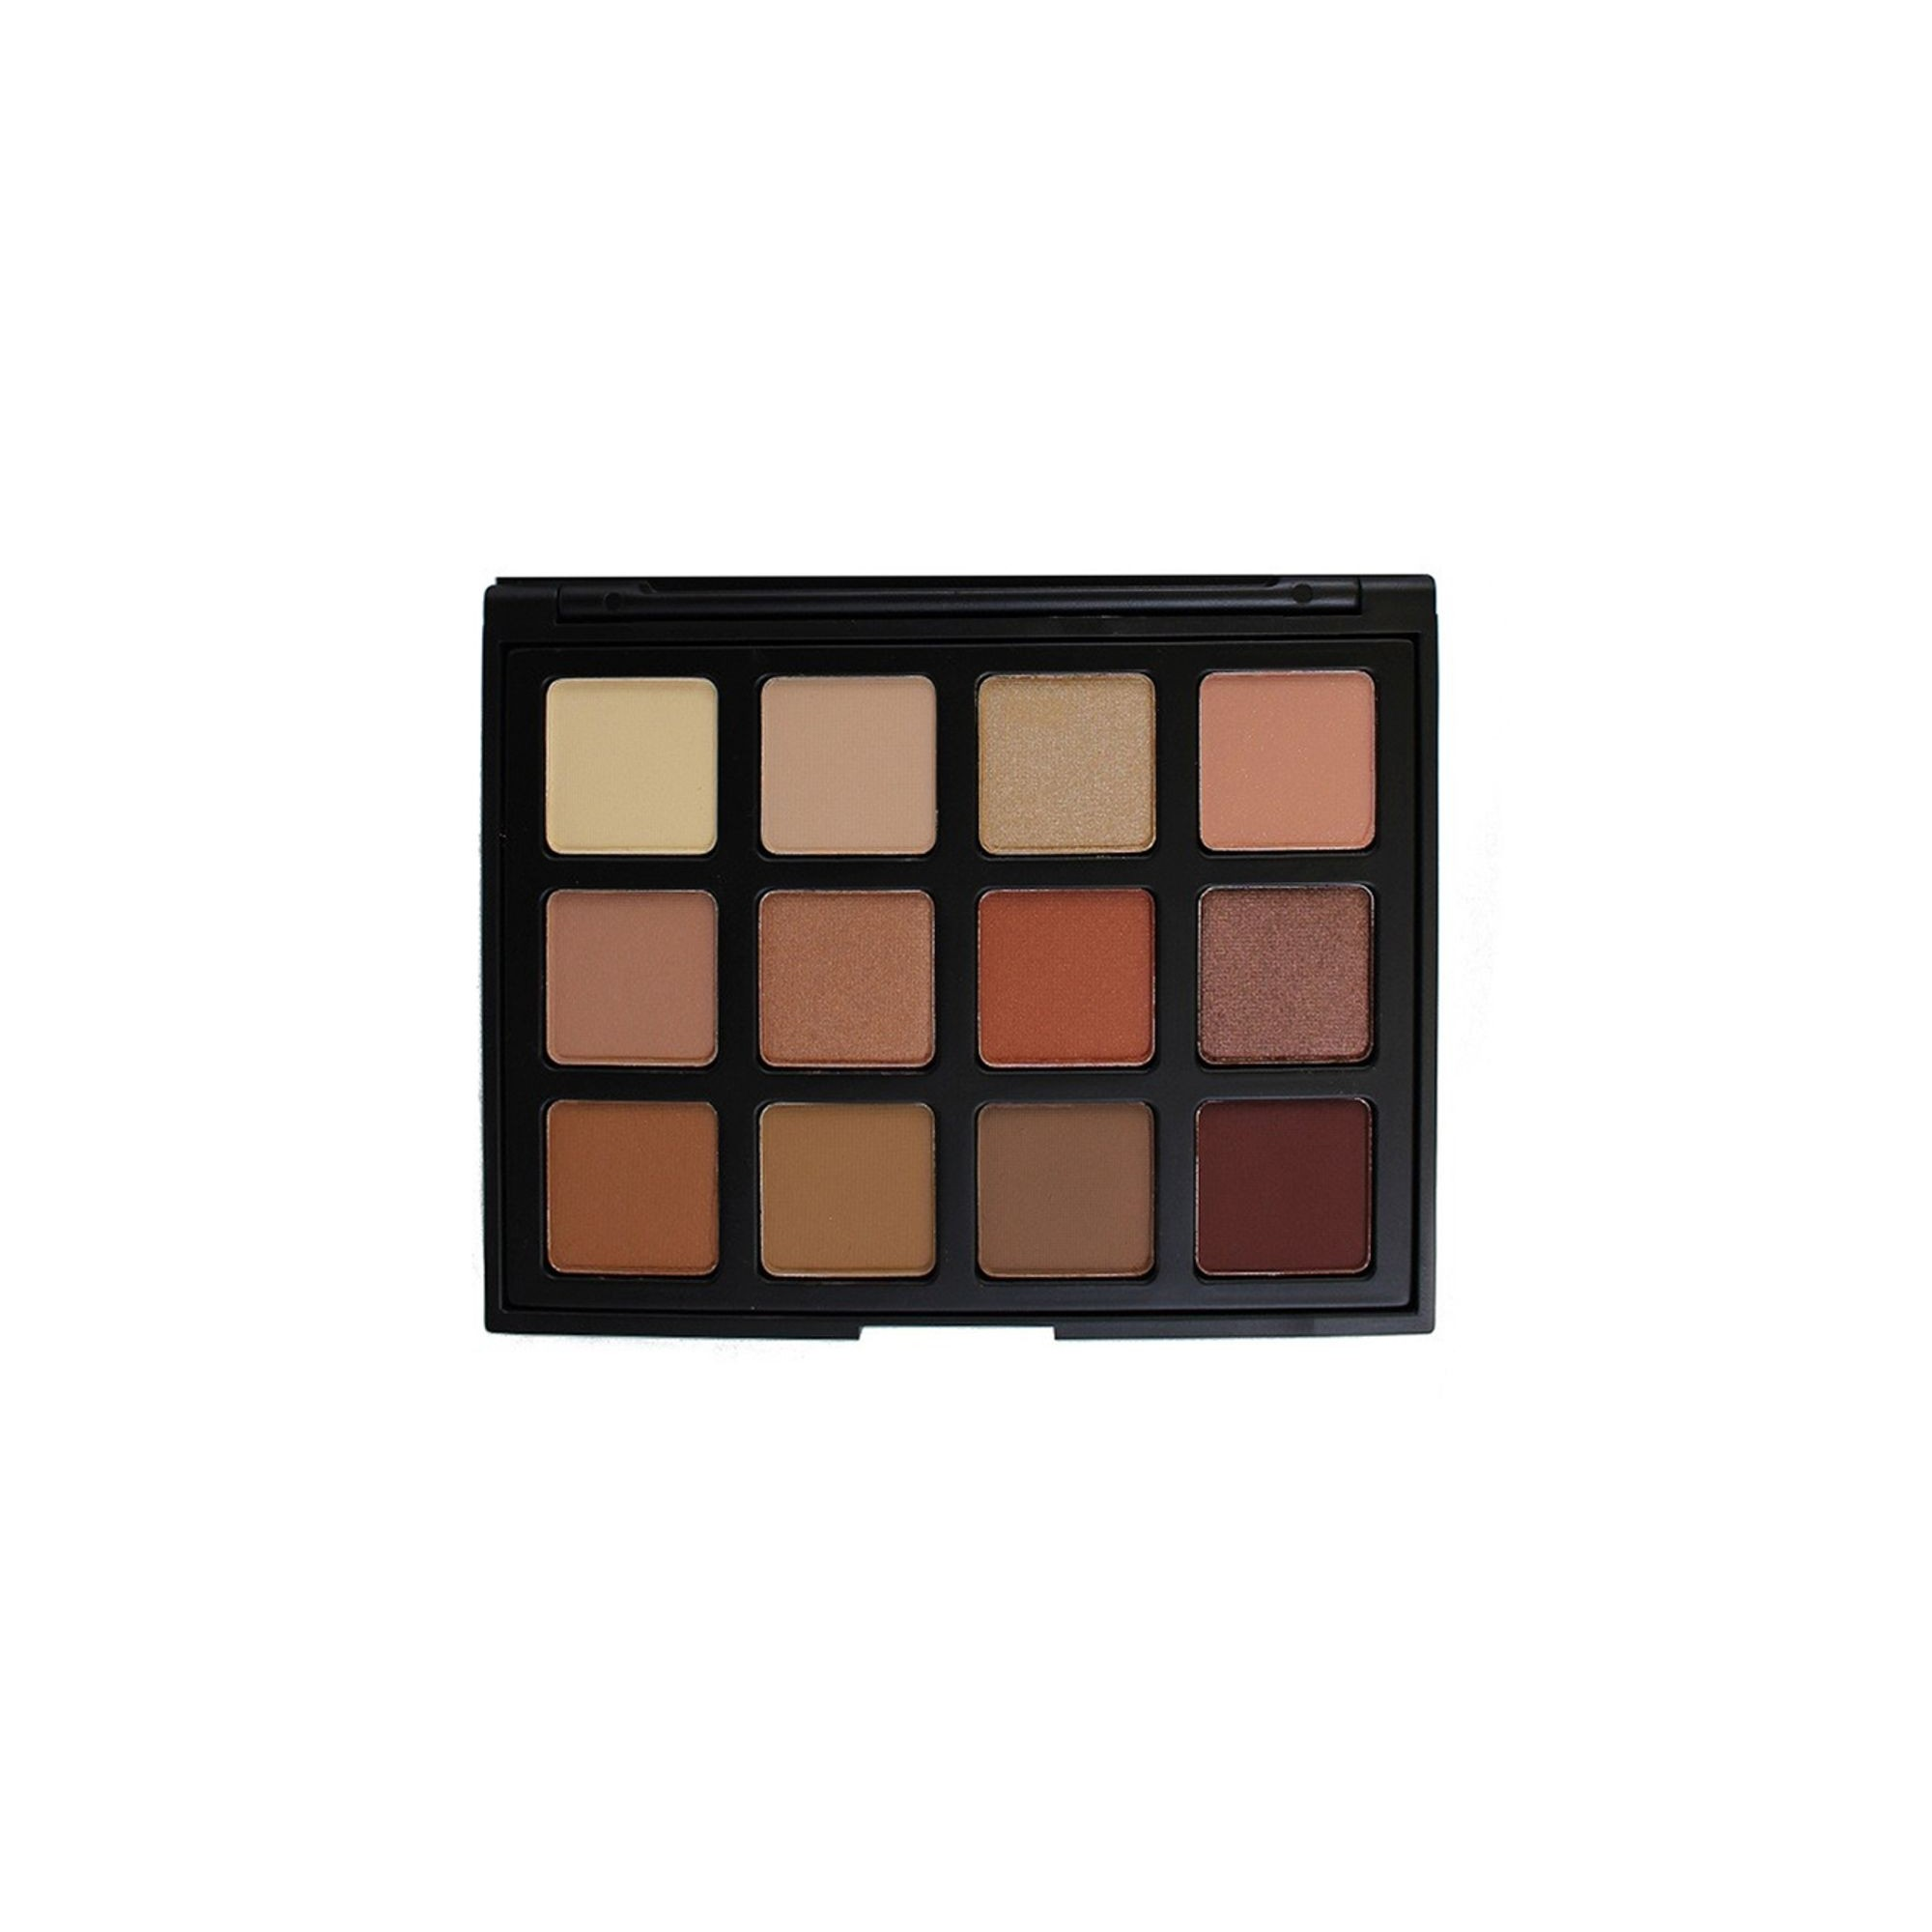 Morphe 12NB Natural Beauty Palette - Pick Me Up Collection